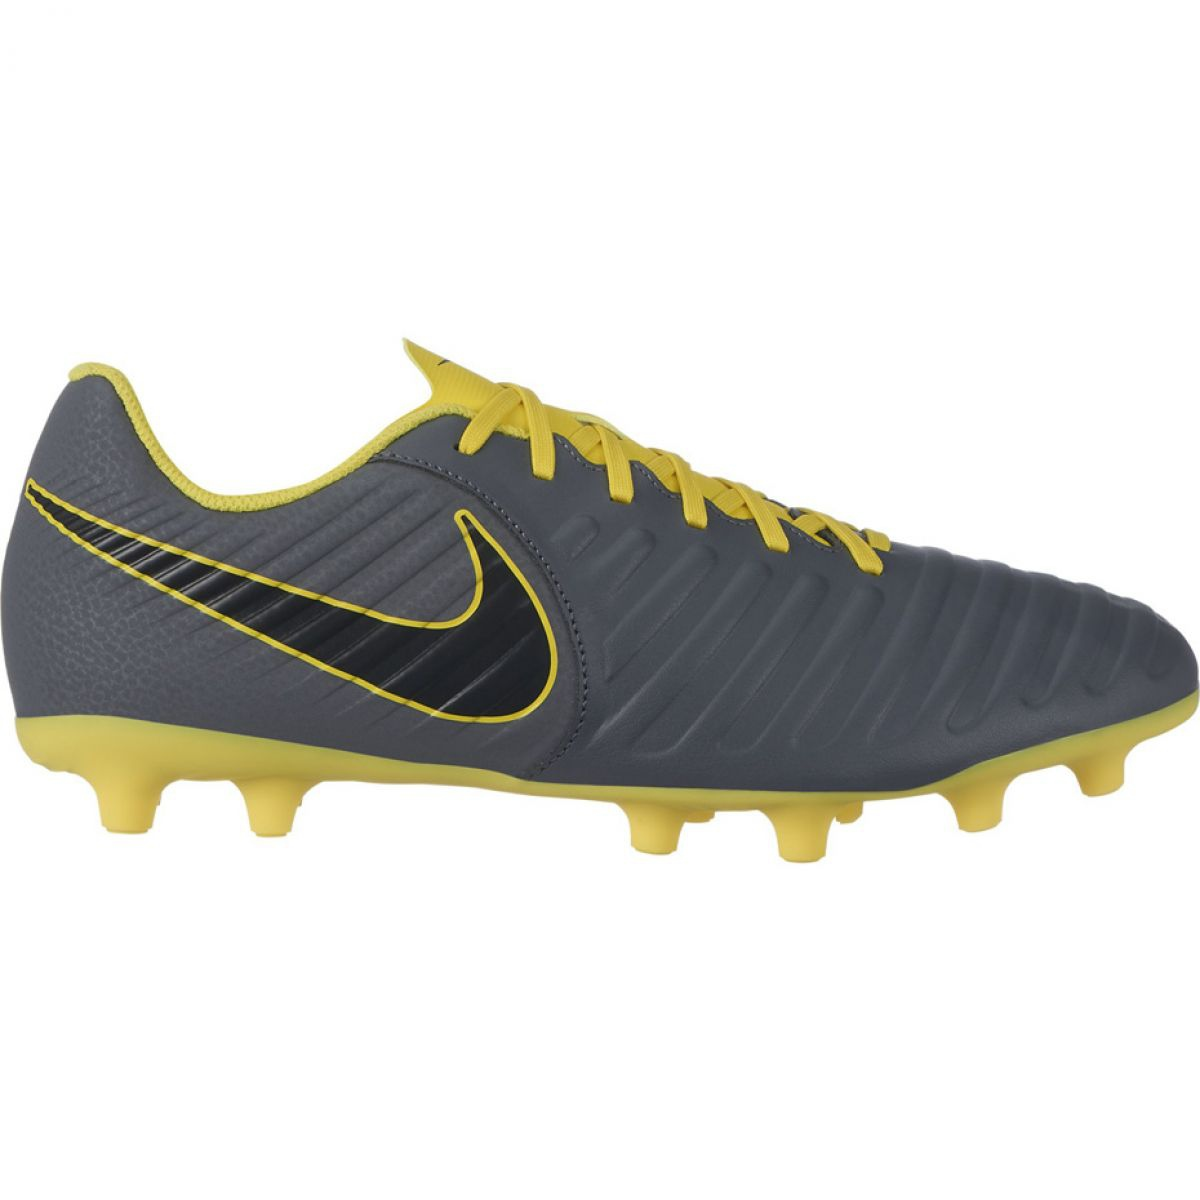 Details about Football shoes Nike Tiempo Legend 7 Club Mg M AO2597 070 grey of graphite